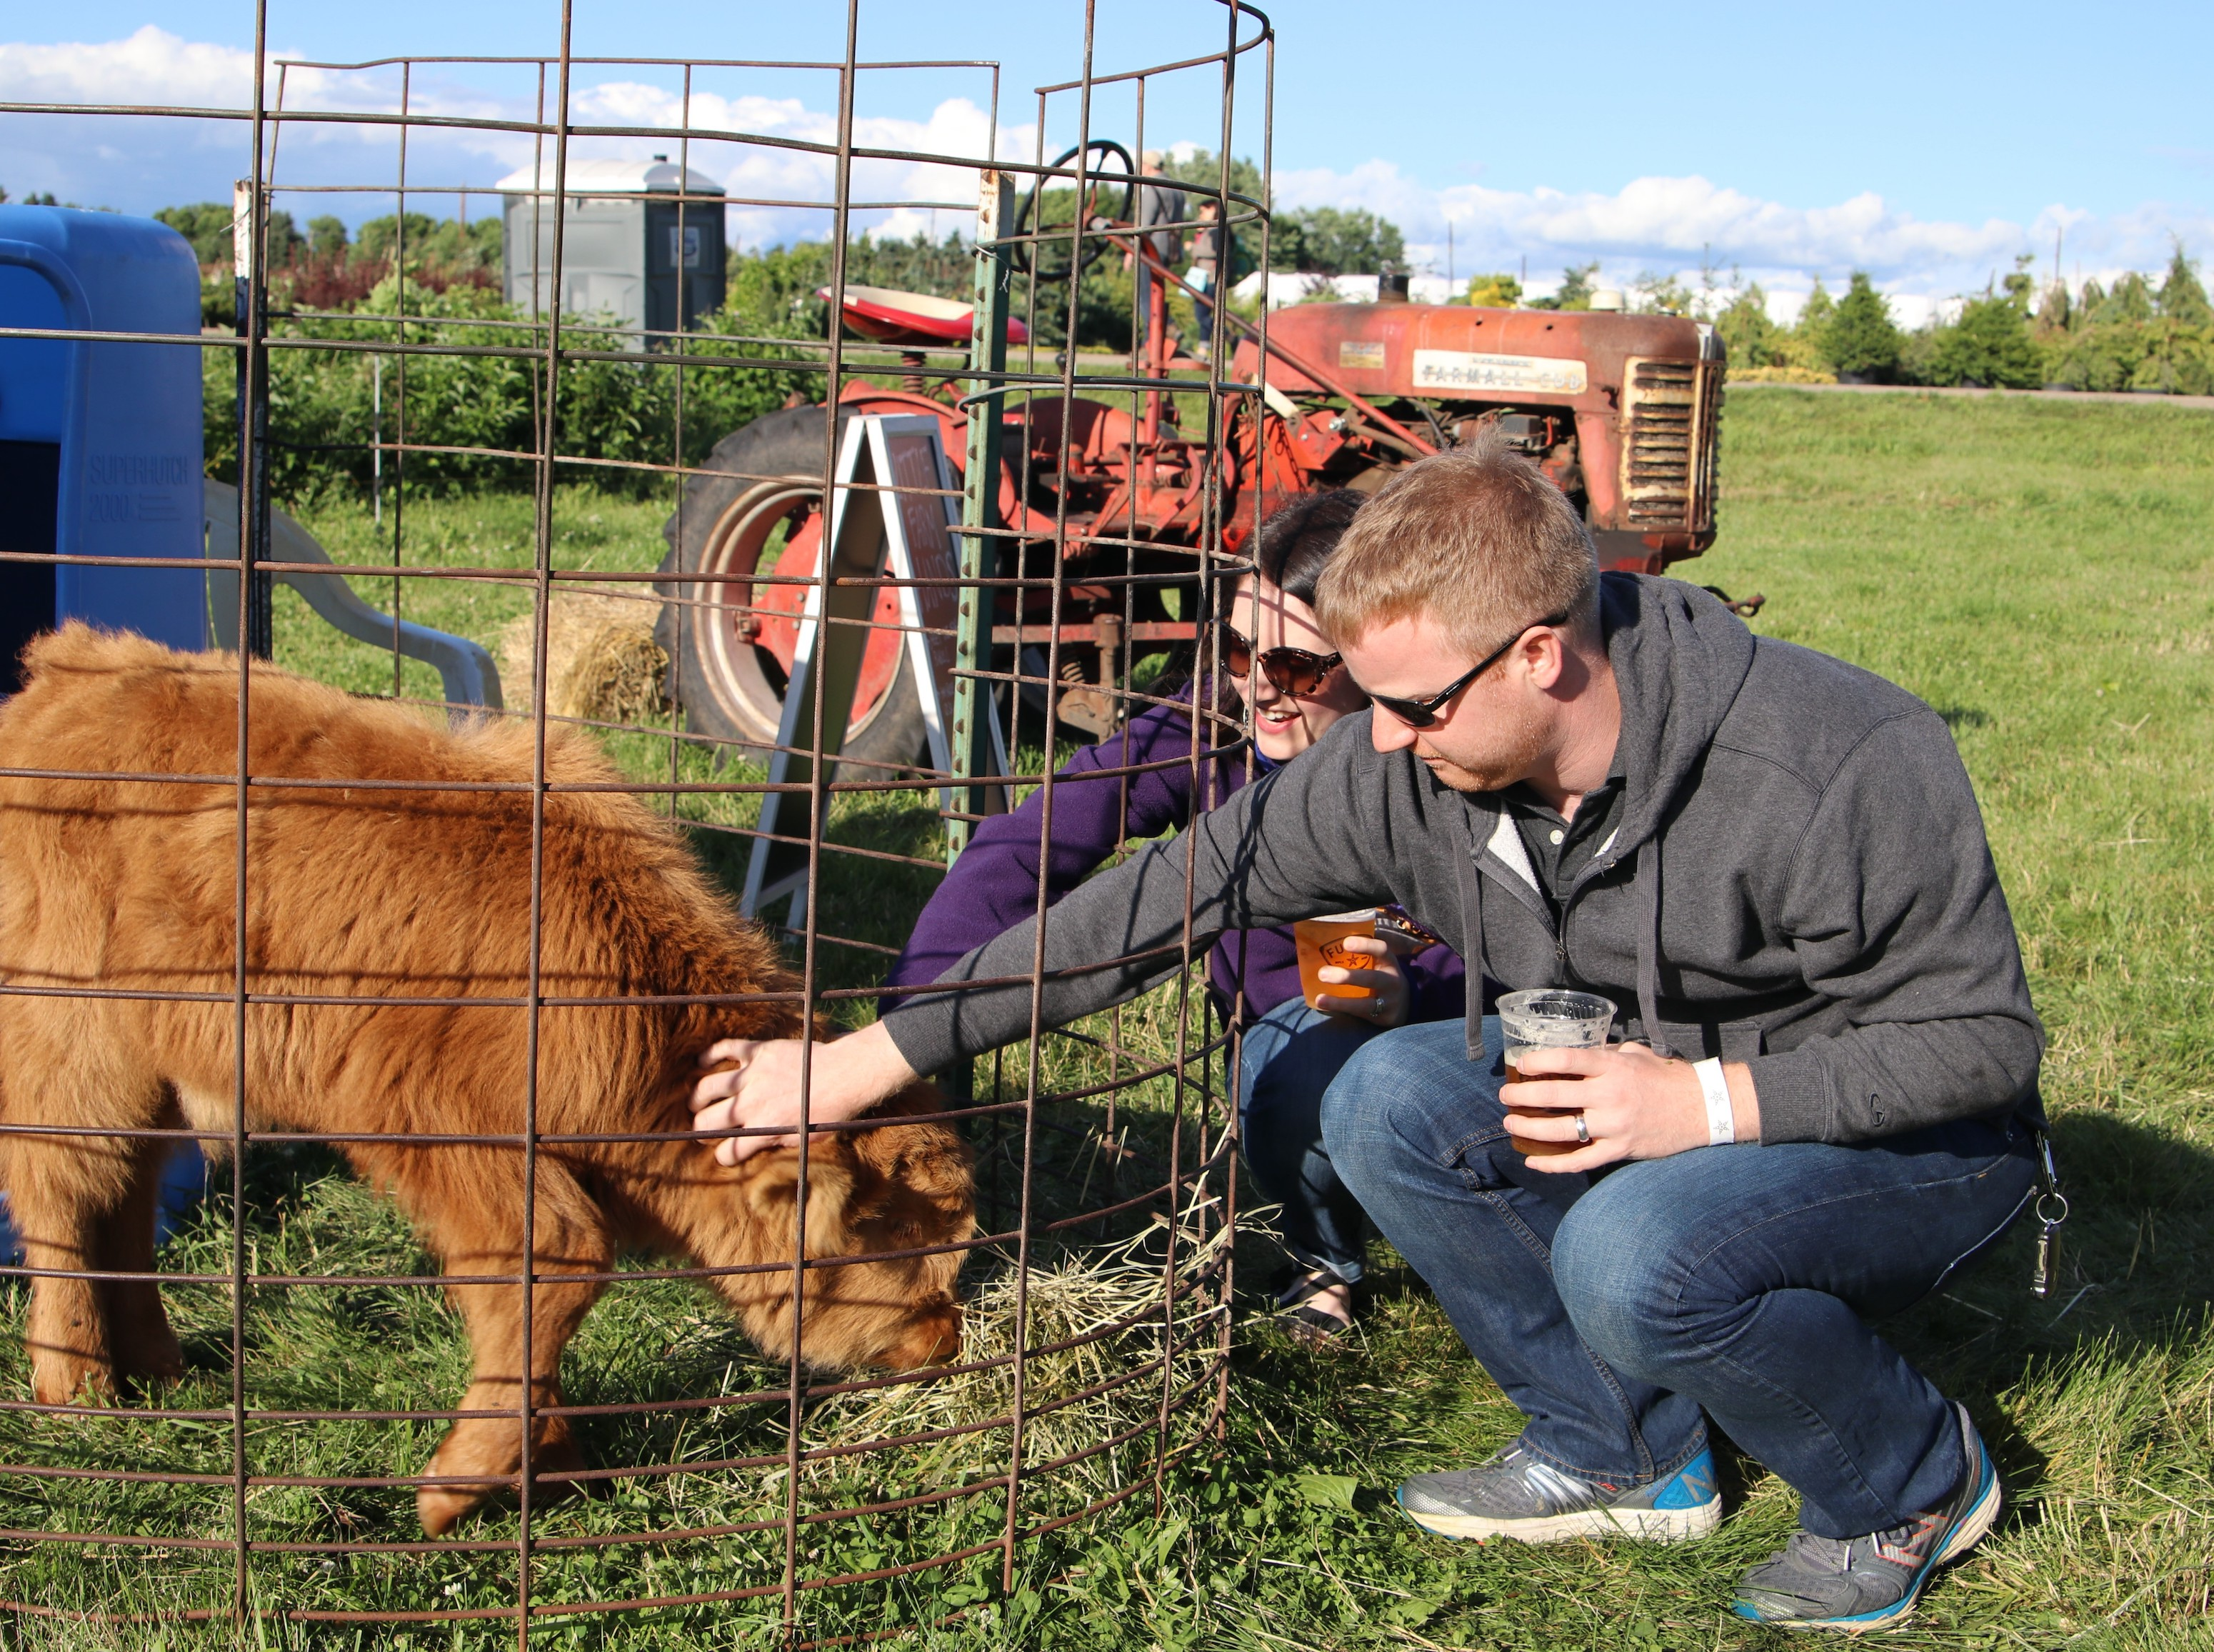 Patrons of Tangletown Gardens' annual farm day have the opportunity to meet the animals that live on the farm, which include Scottish highland cows, Heritage hogs, turkeys, ducks and chickens. Photo courtesy Tangletown Gardens